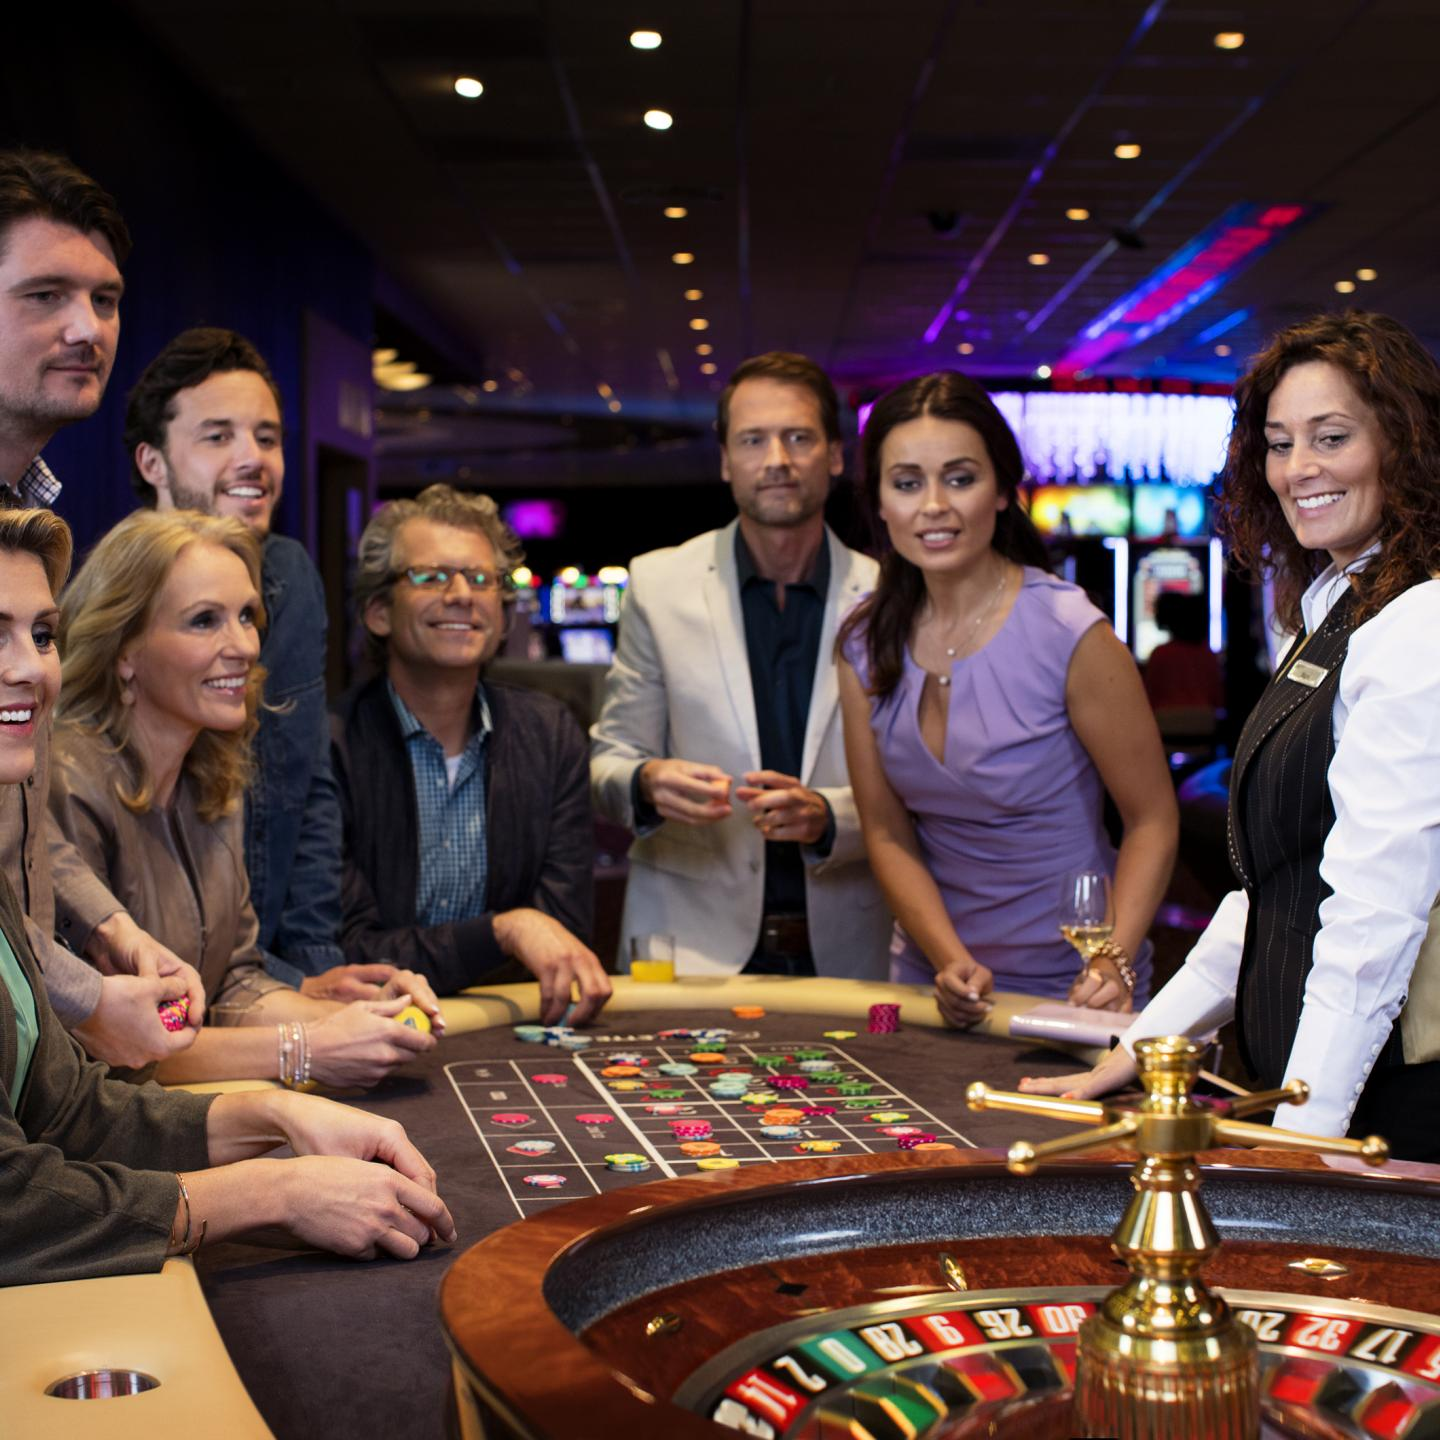 Reliable Gaming Holland Casino Corporate